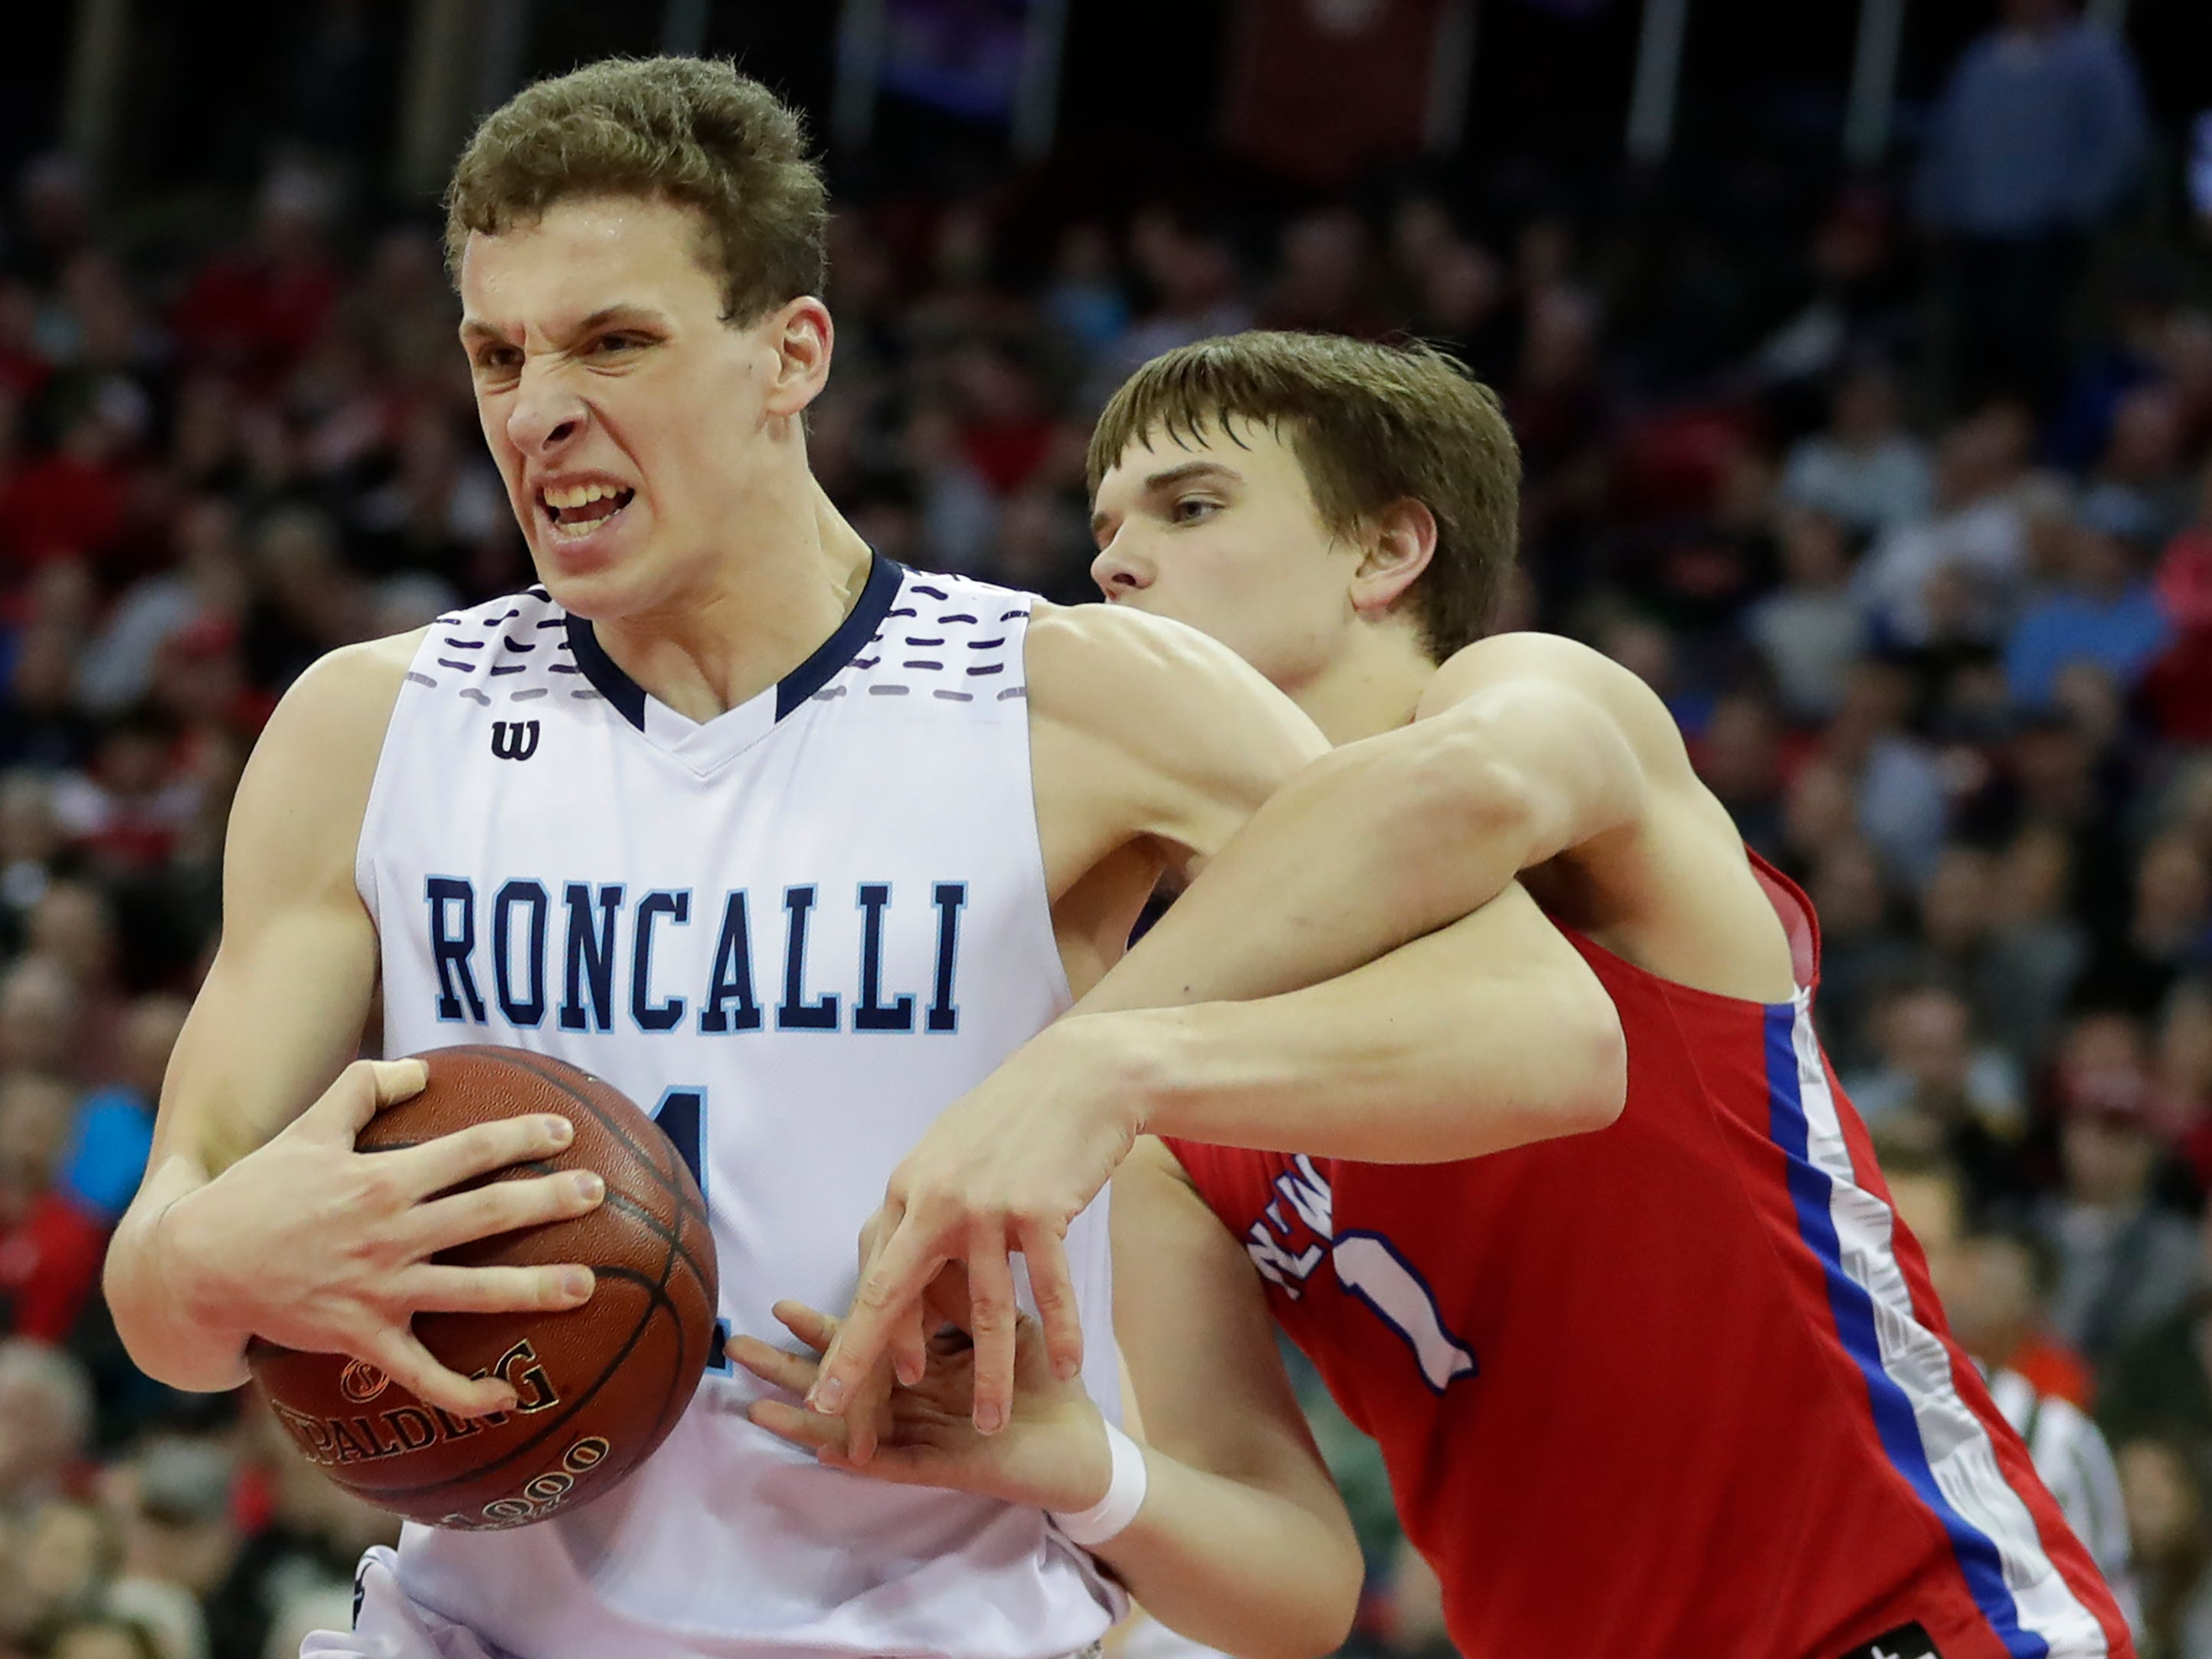 Roncalli High School's Daniel Burgarino (1) fends off New Glarus High School's Mason Martinson (1) for control of the ball during their WIAA Division 4 boys basketball state semifinal at the Kohl Center Thursday, March 14, 2019, in Madison, Wis.